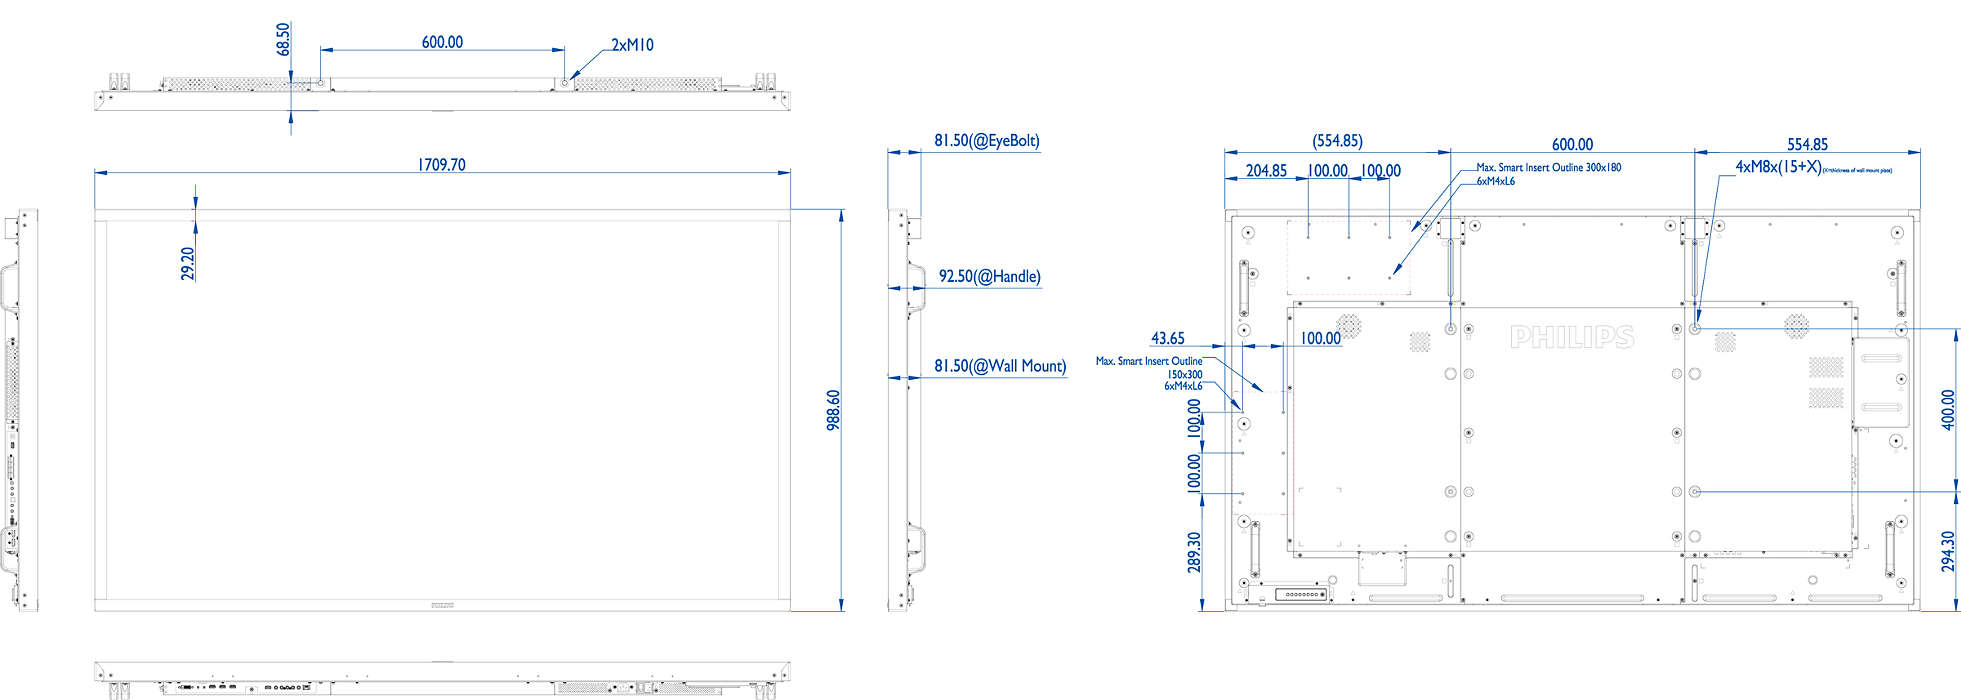 Multi Touch Display 75bdl3010t 00 Philips Available Part Diagrams 75 In Body Hardware Discover A New Level Of Interaction